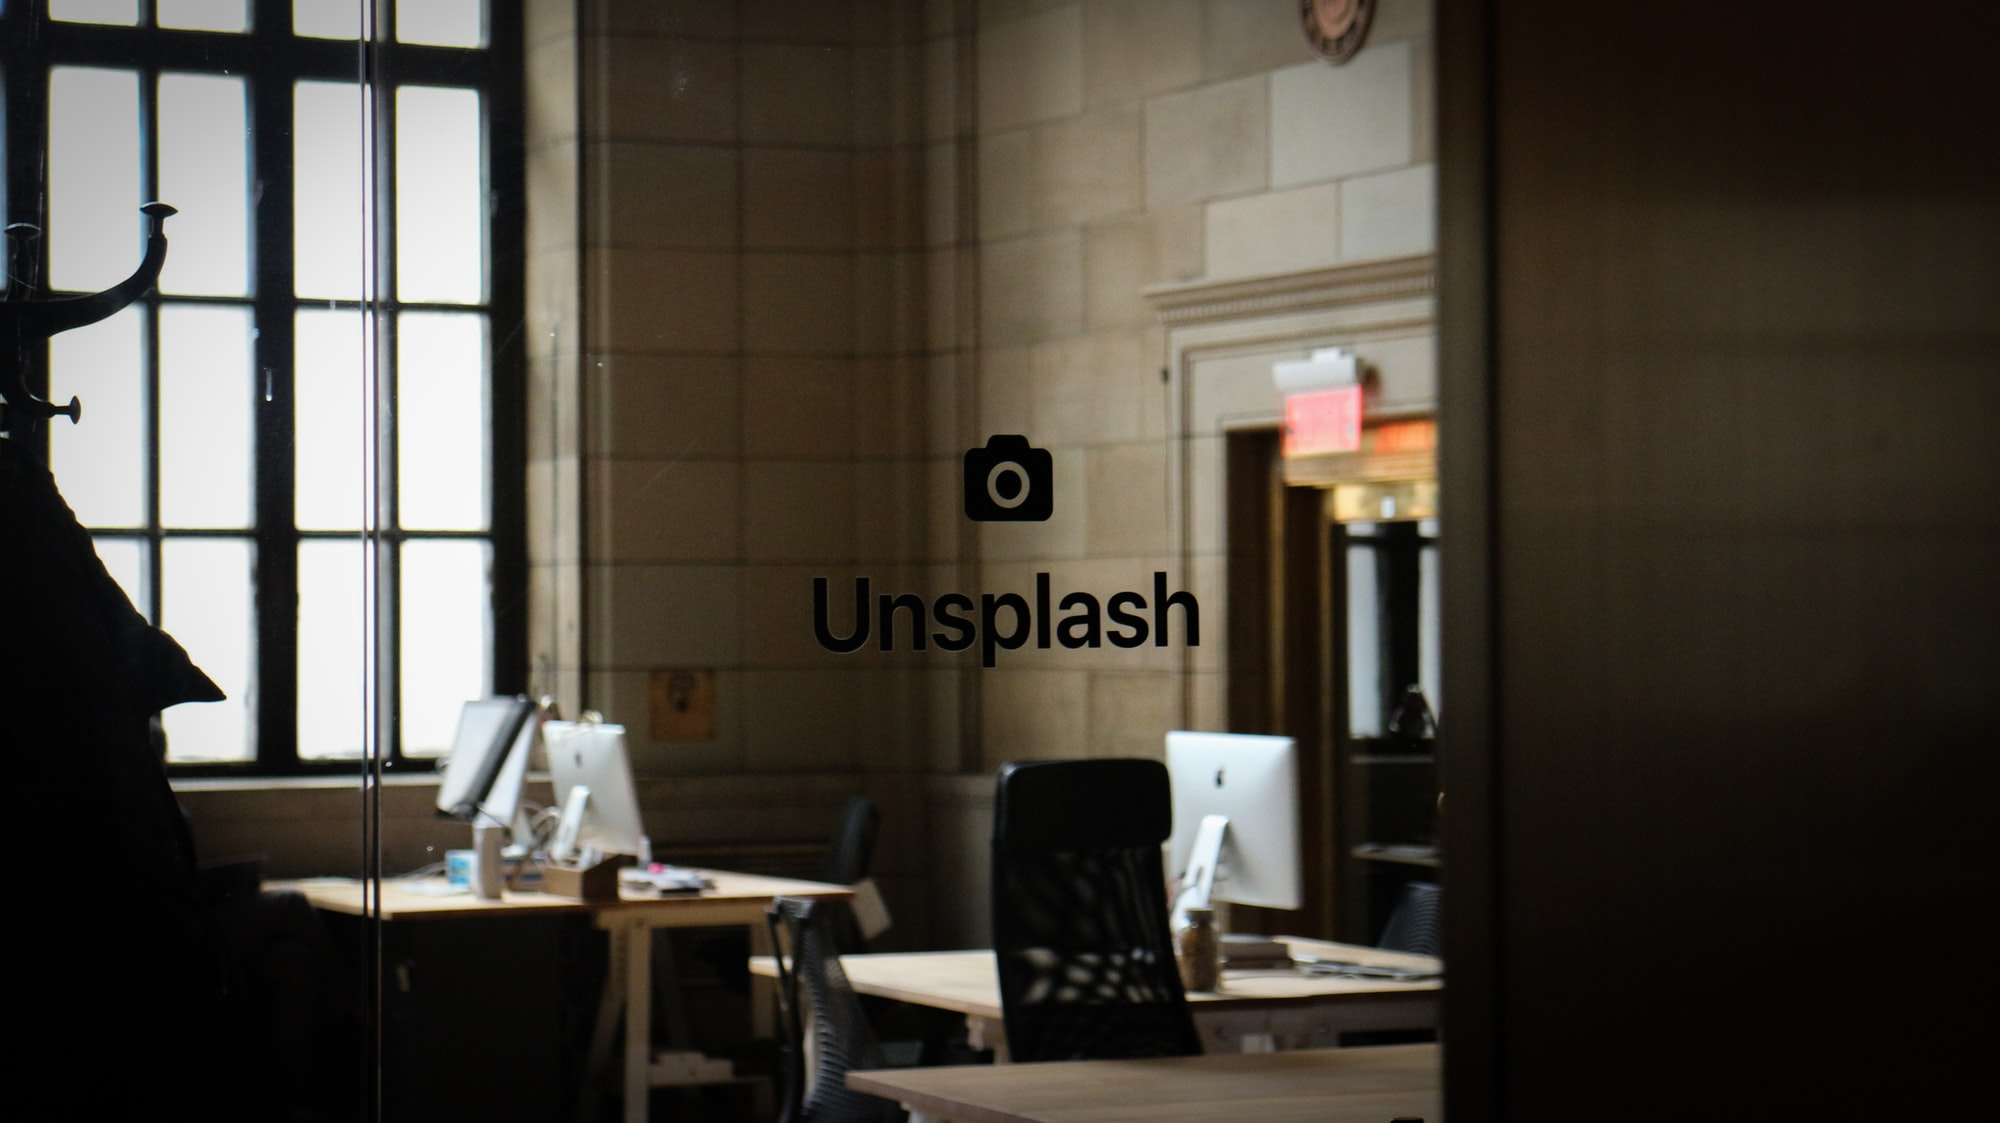 Went on a field trip with my French class to Montreal. My friend wanted to go somewhere that served coffee so we went into this area that looked like a train station. We sat down and soon I noticed the Unsplash logo and was immediately surprised.